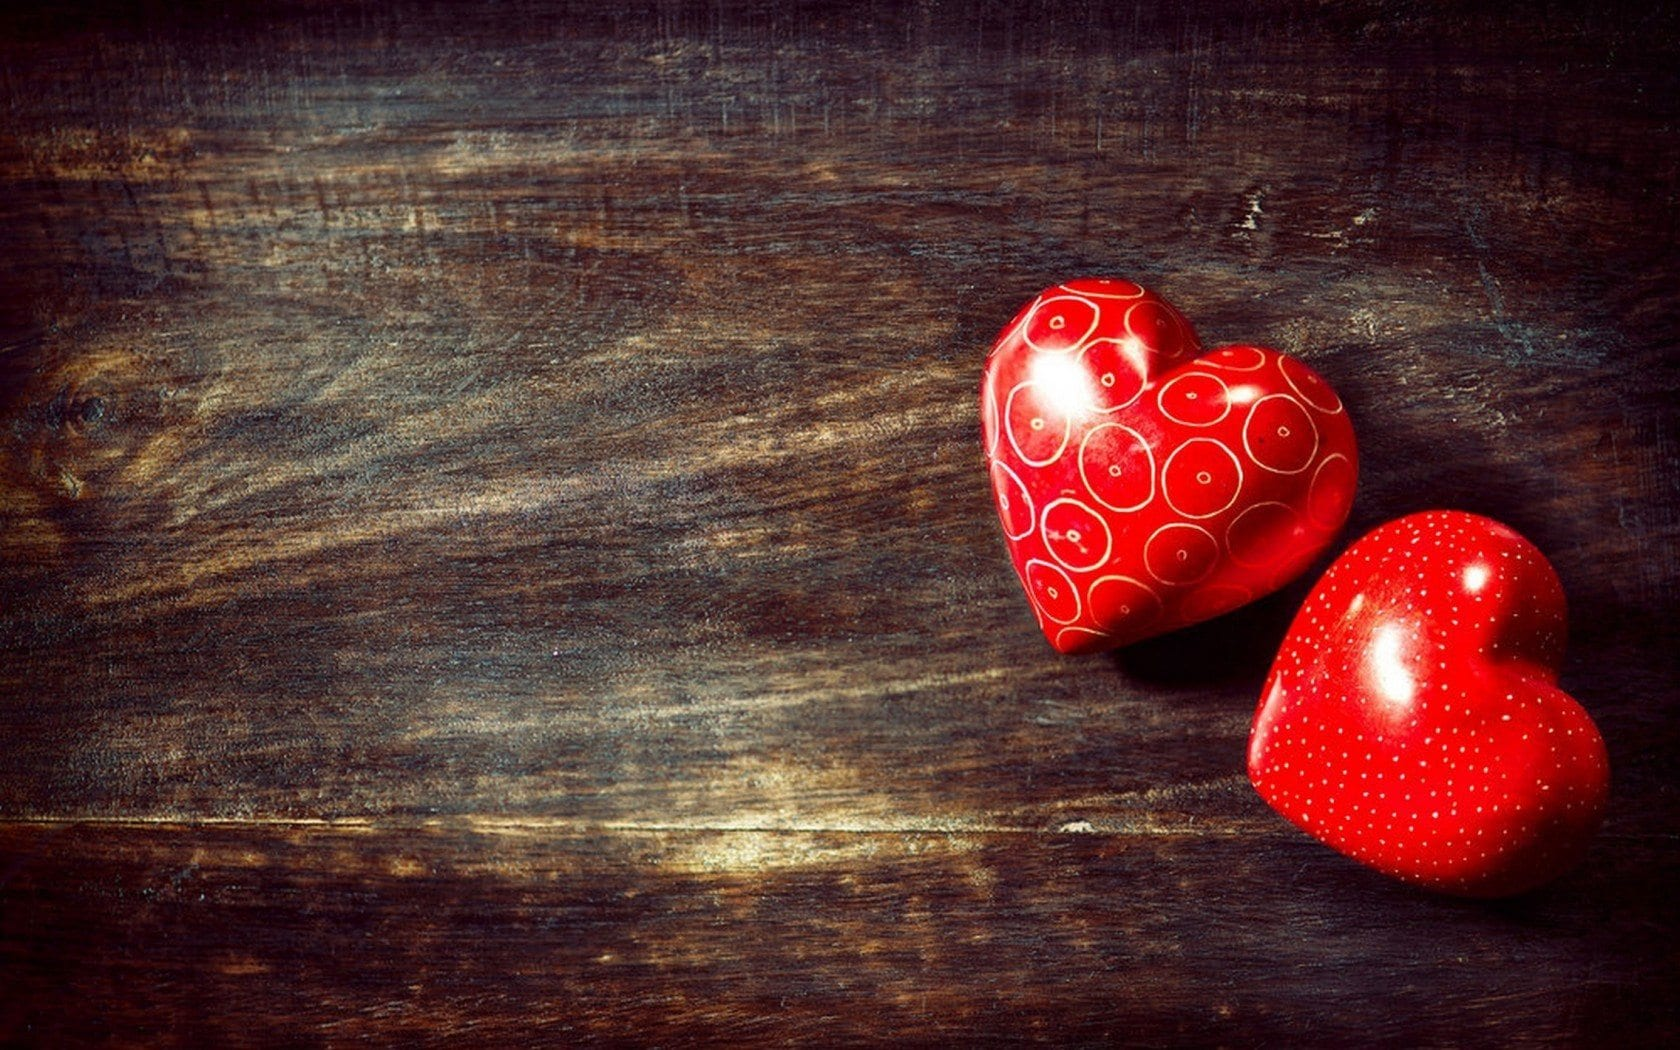 Love Wallpapers Hd : Love Images / Love HD Wallpaper